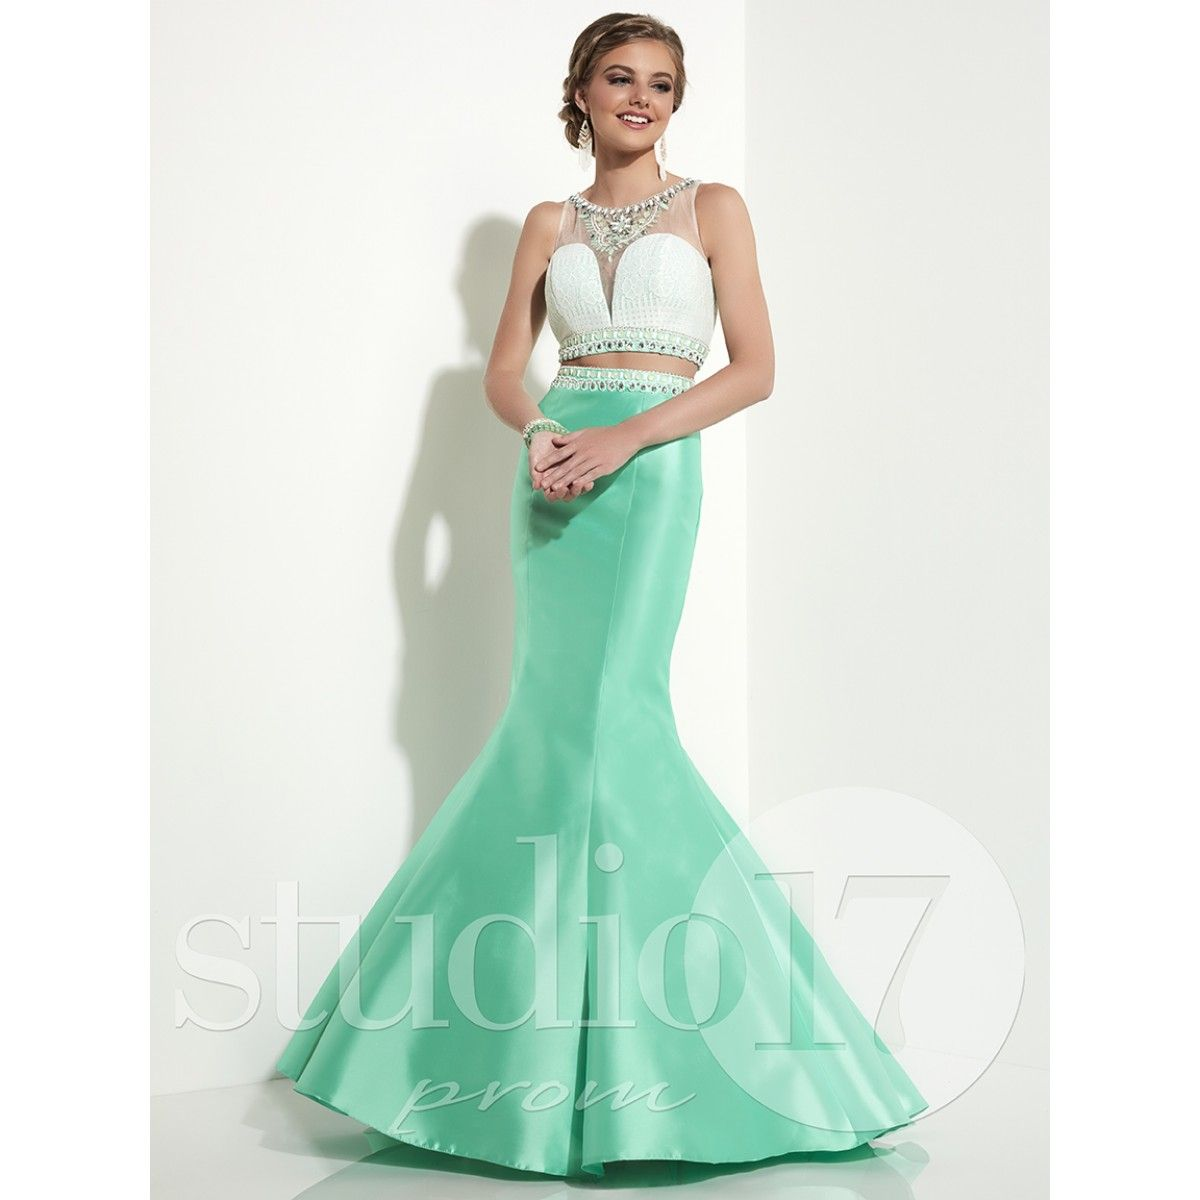 Prom dress New   Style 12609 Studio 17 Available at Proms ...